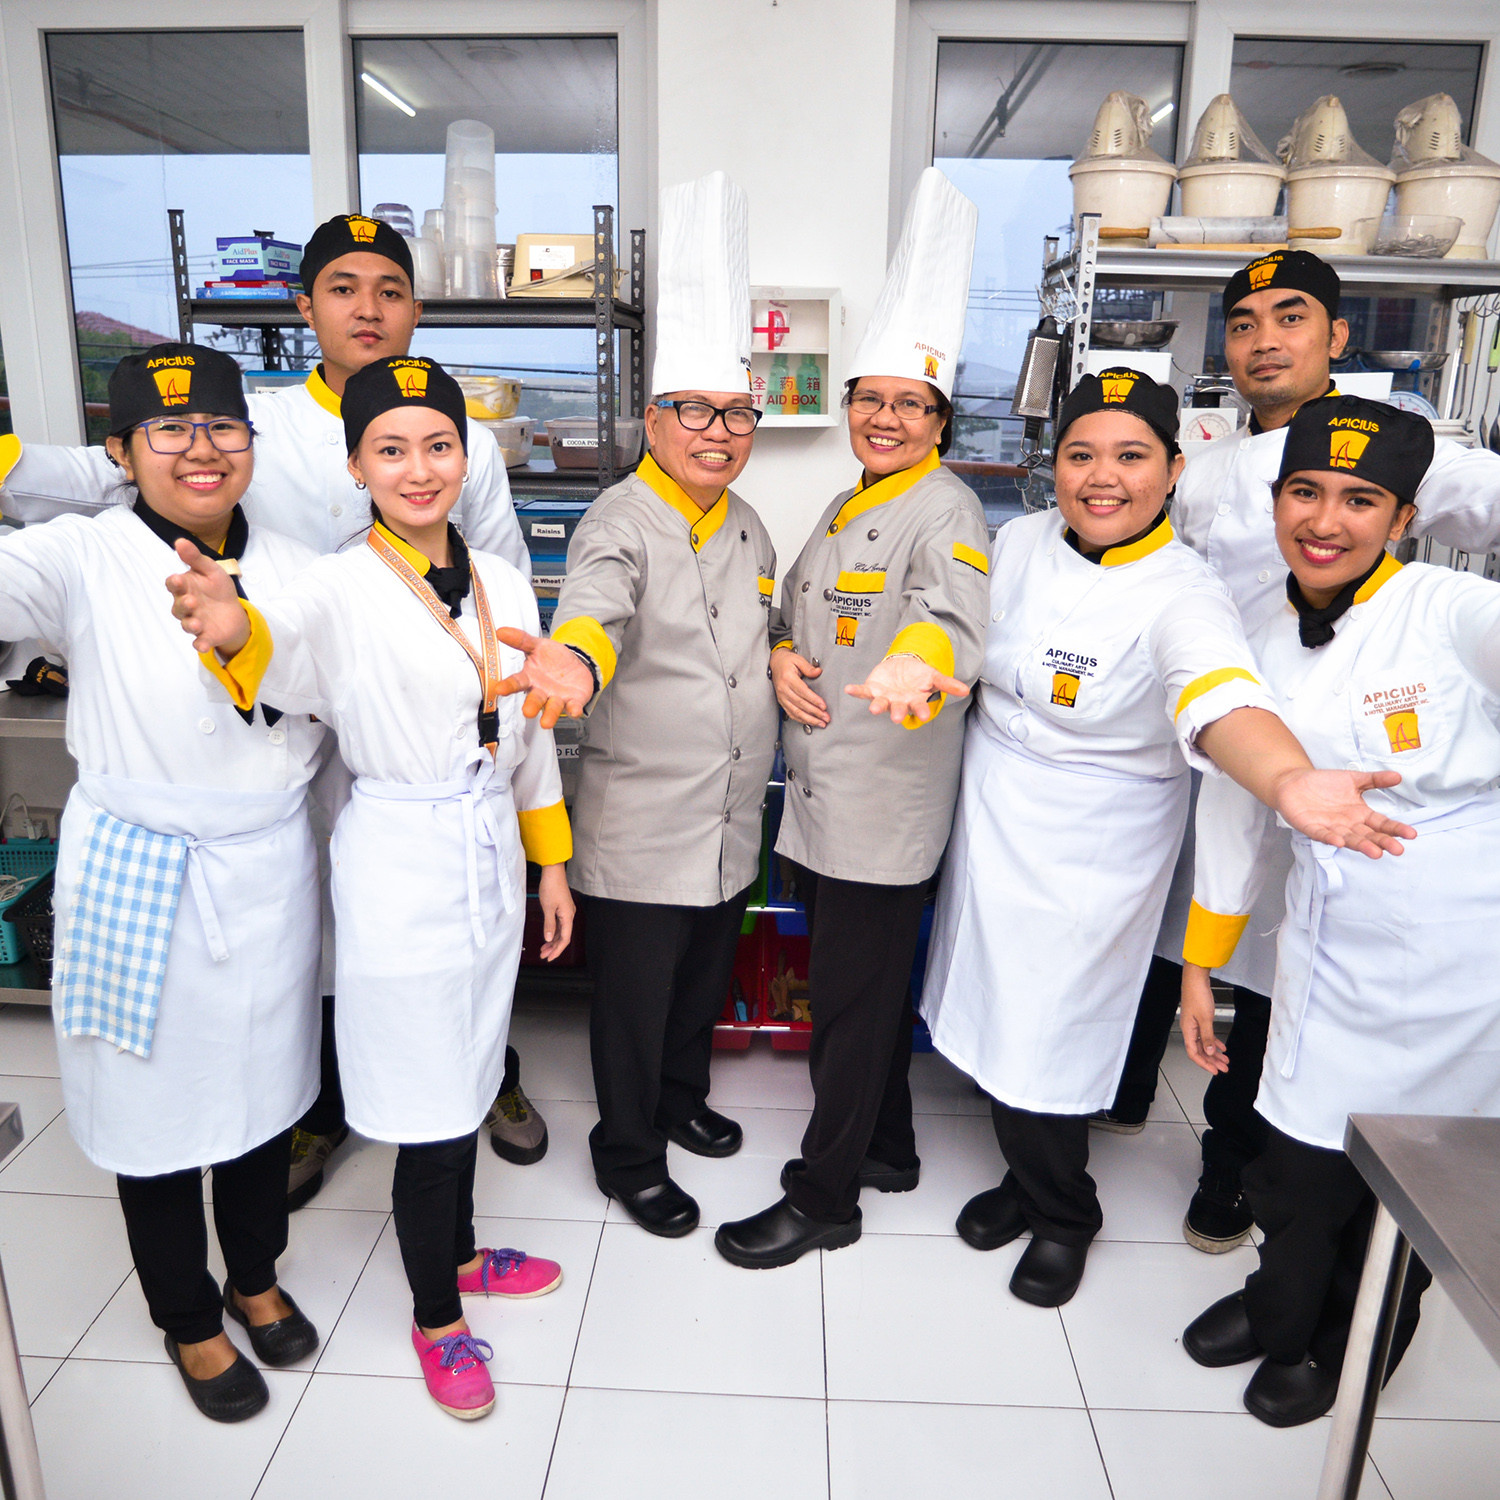 Diploma in Culinary Arts Pastry and Baking